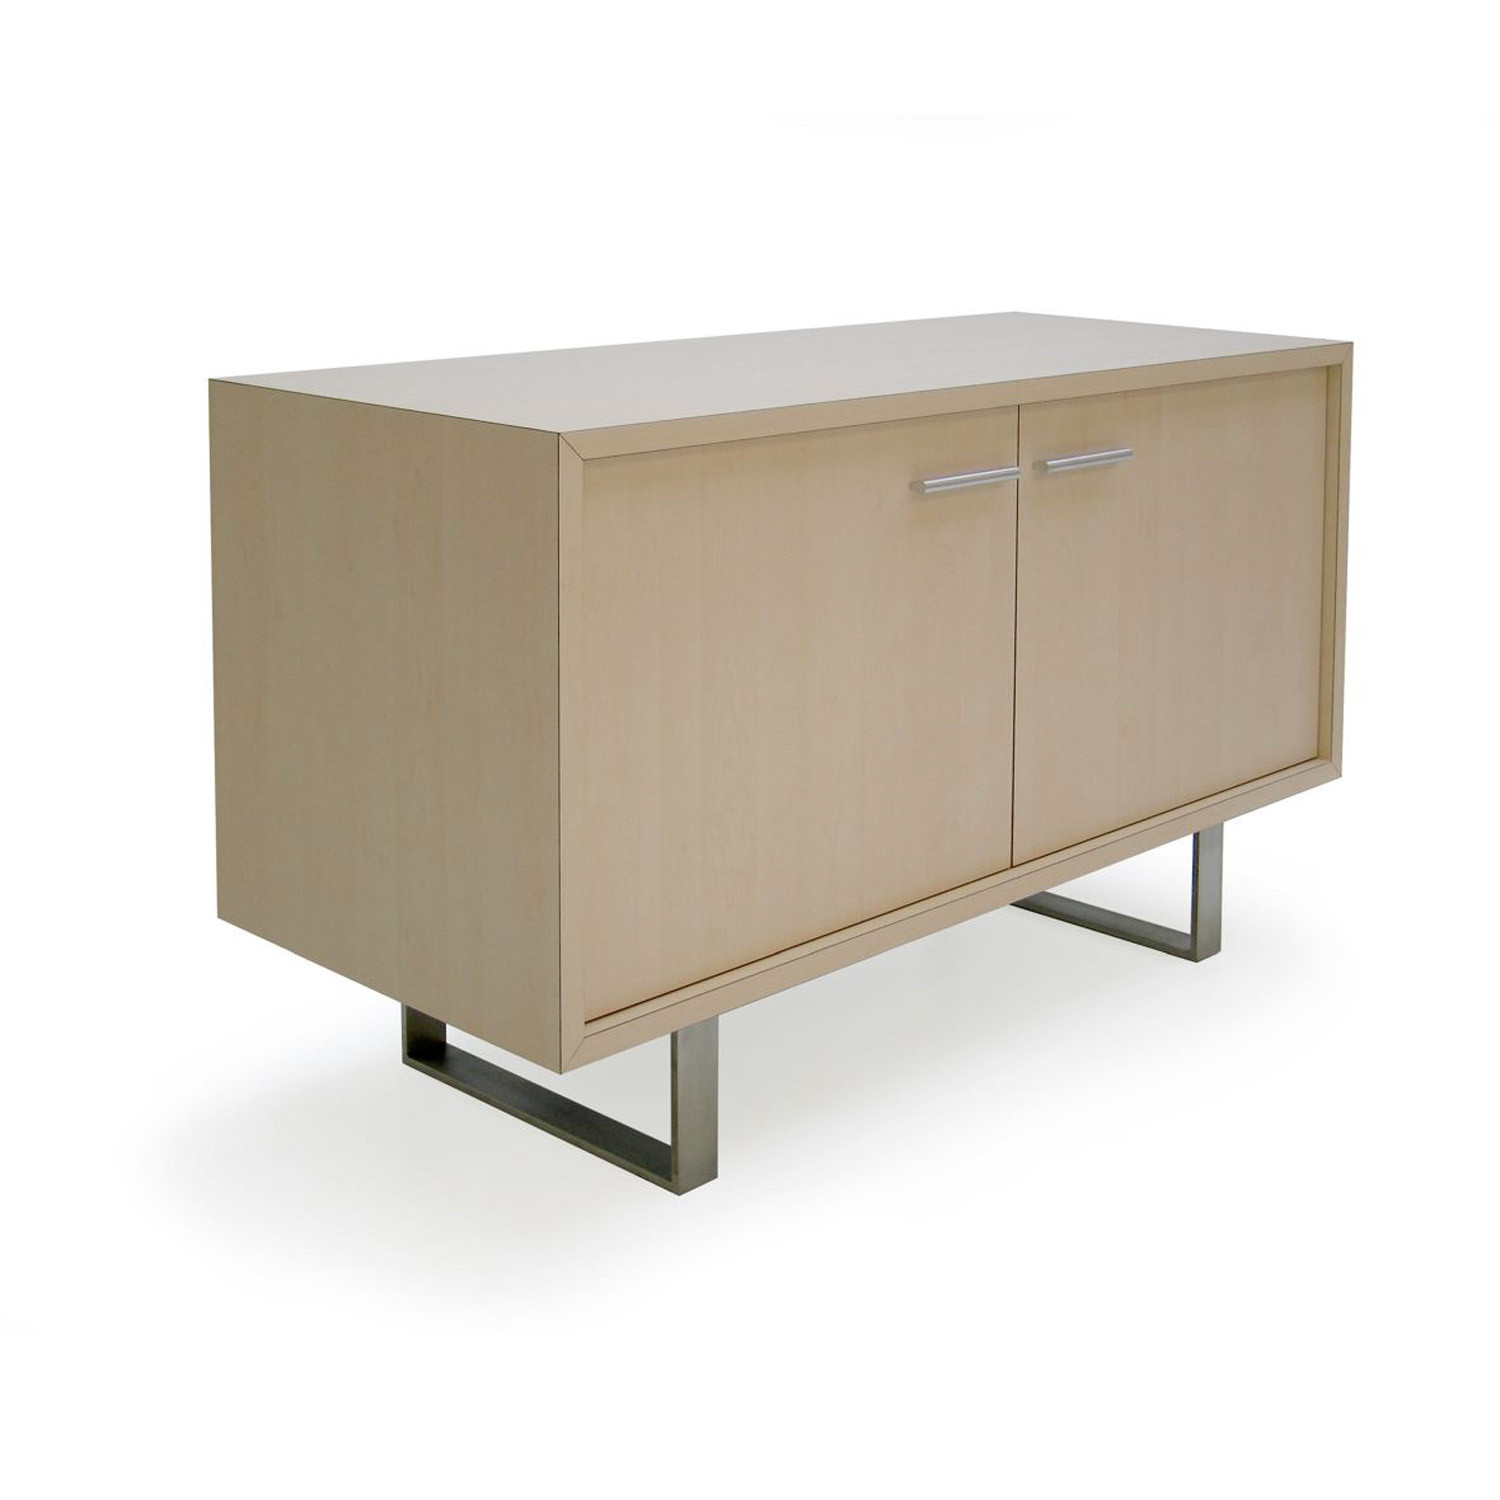 Series 2 Credenza Unit - Loop Legs